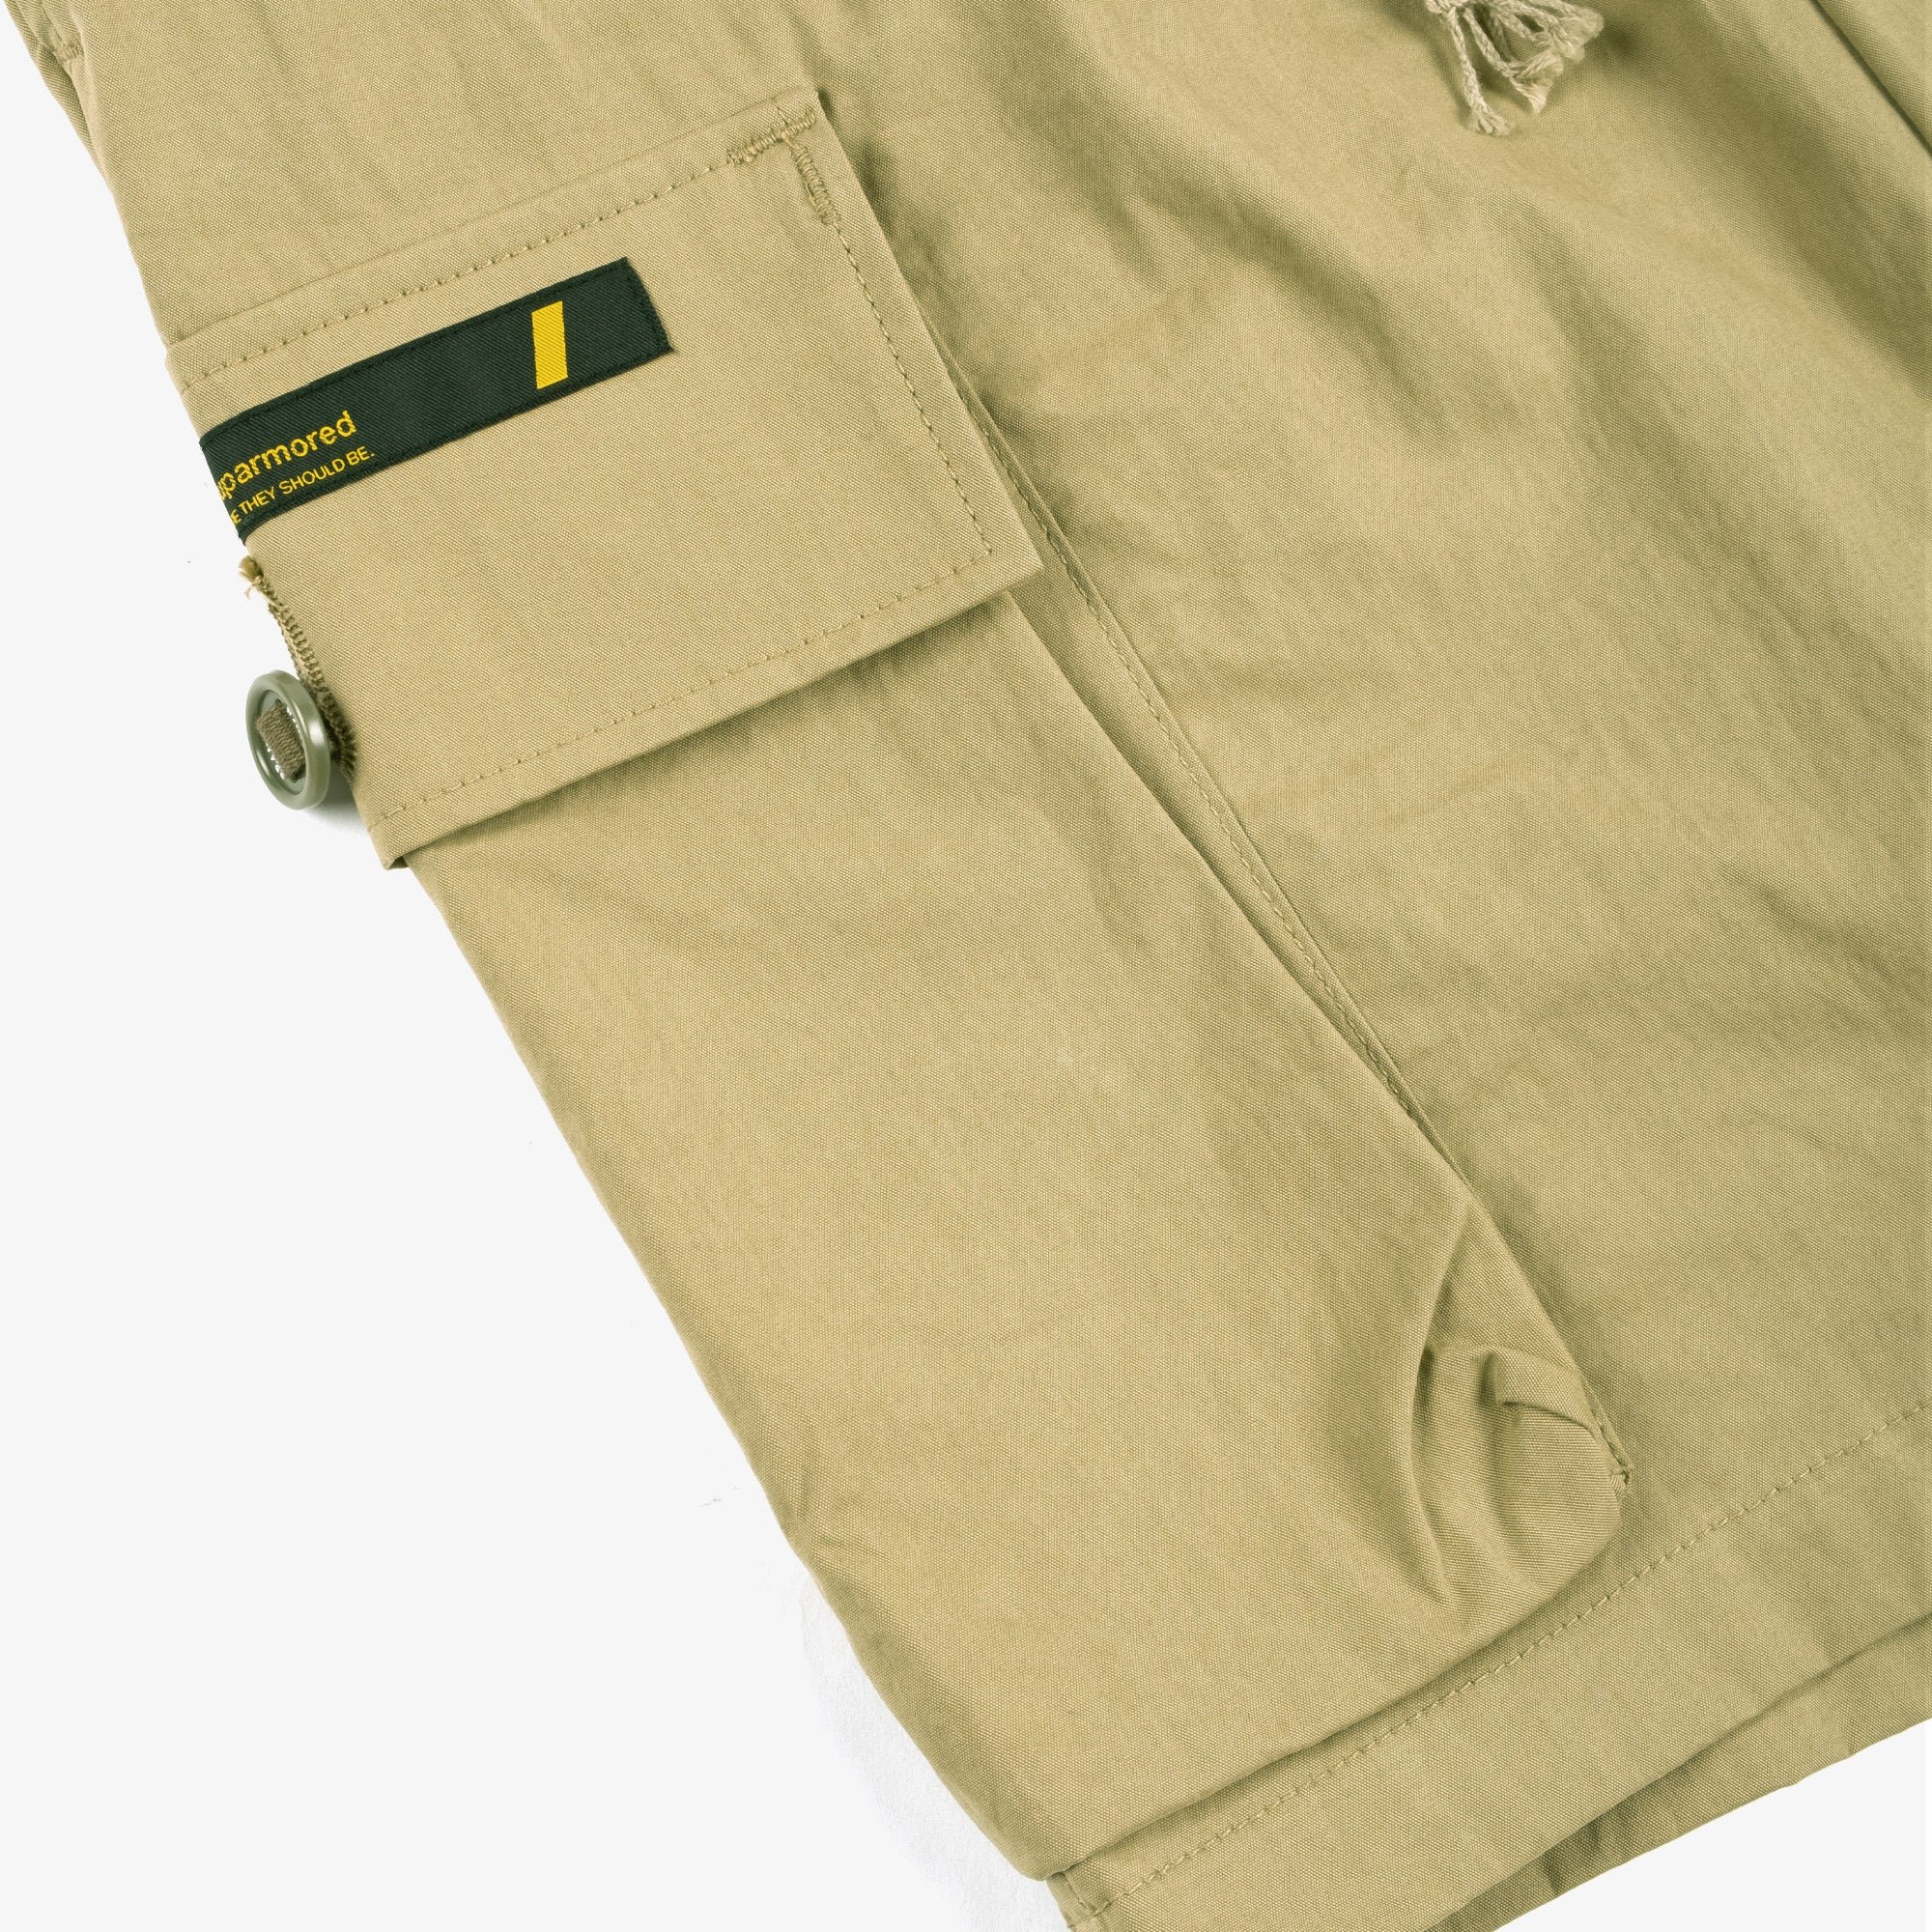 WTAPS Jungle Country Nyco Shorts - Olive Drab 5